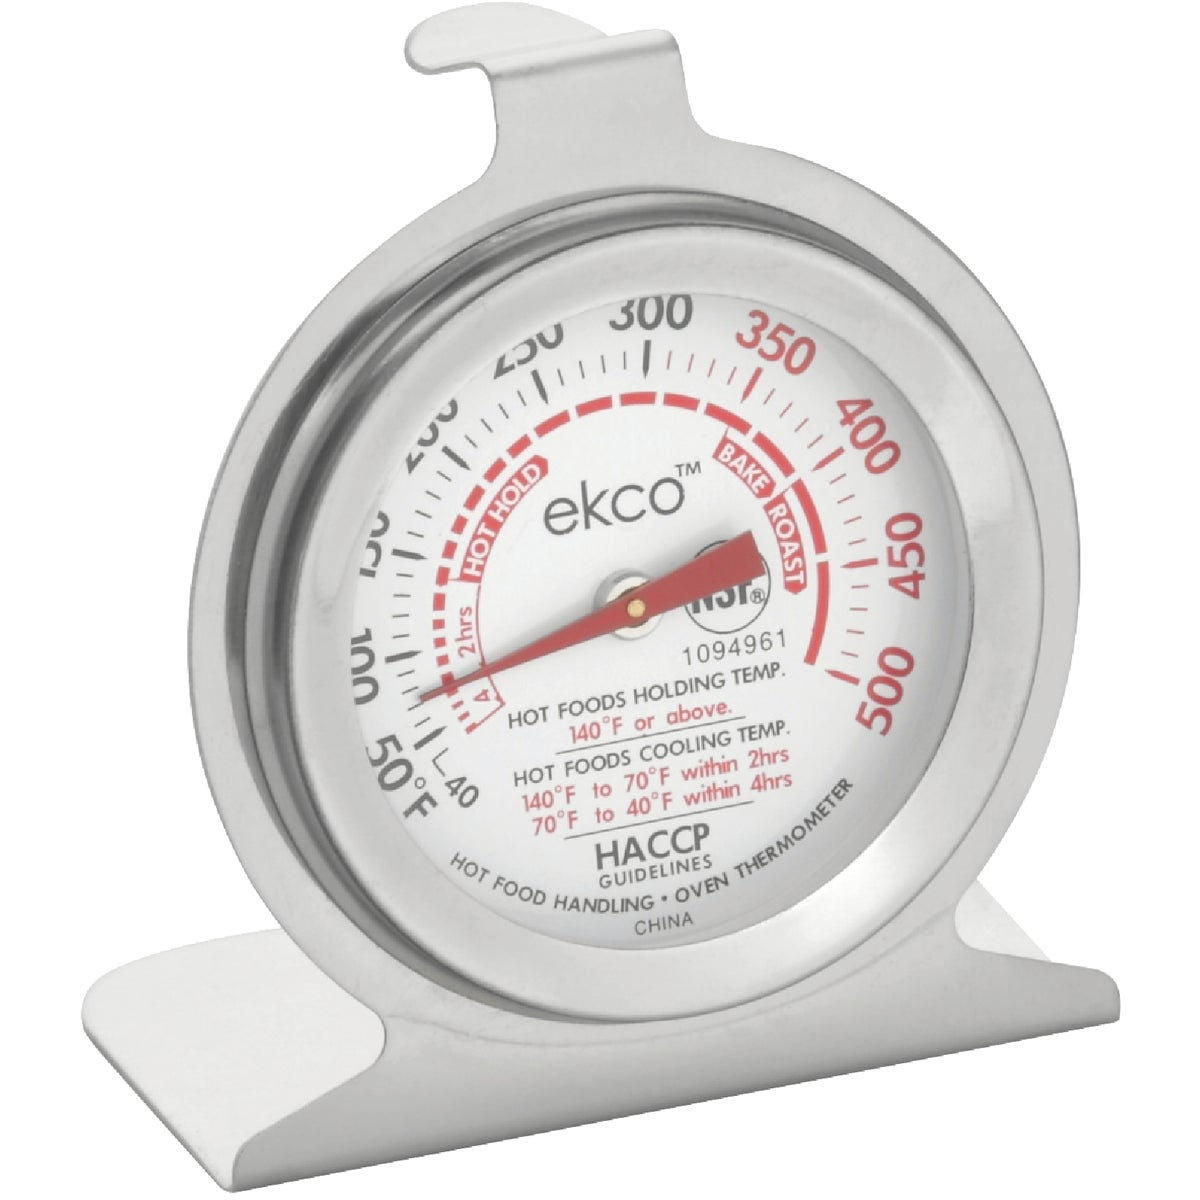 OVEN THERMOMETER - 1094961 by World Kitchen  Ekco